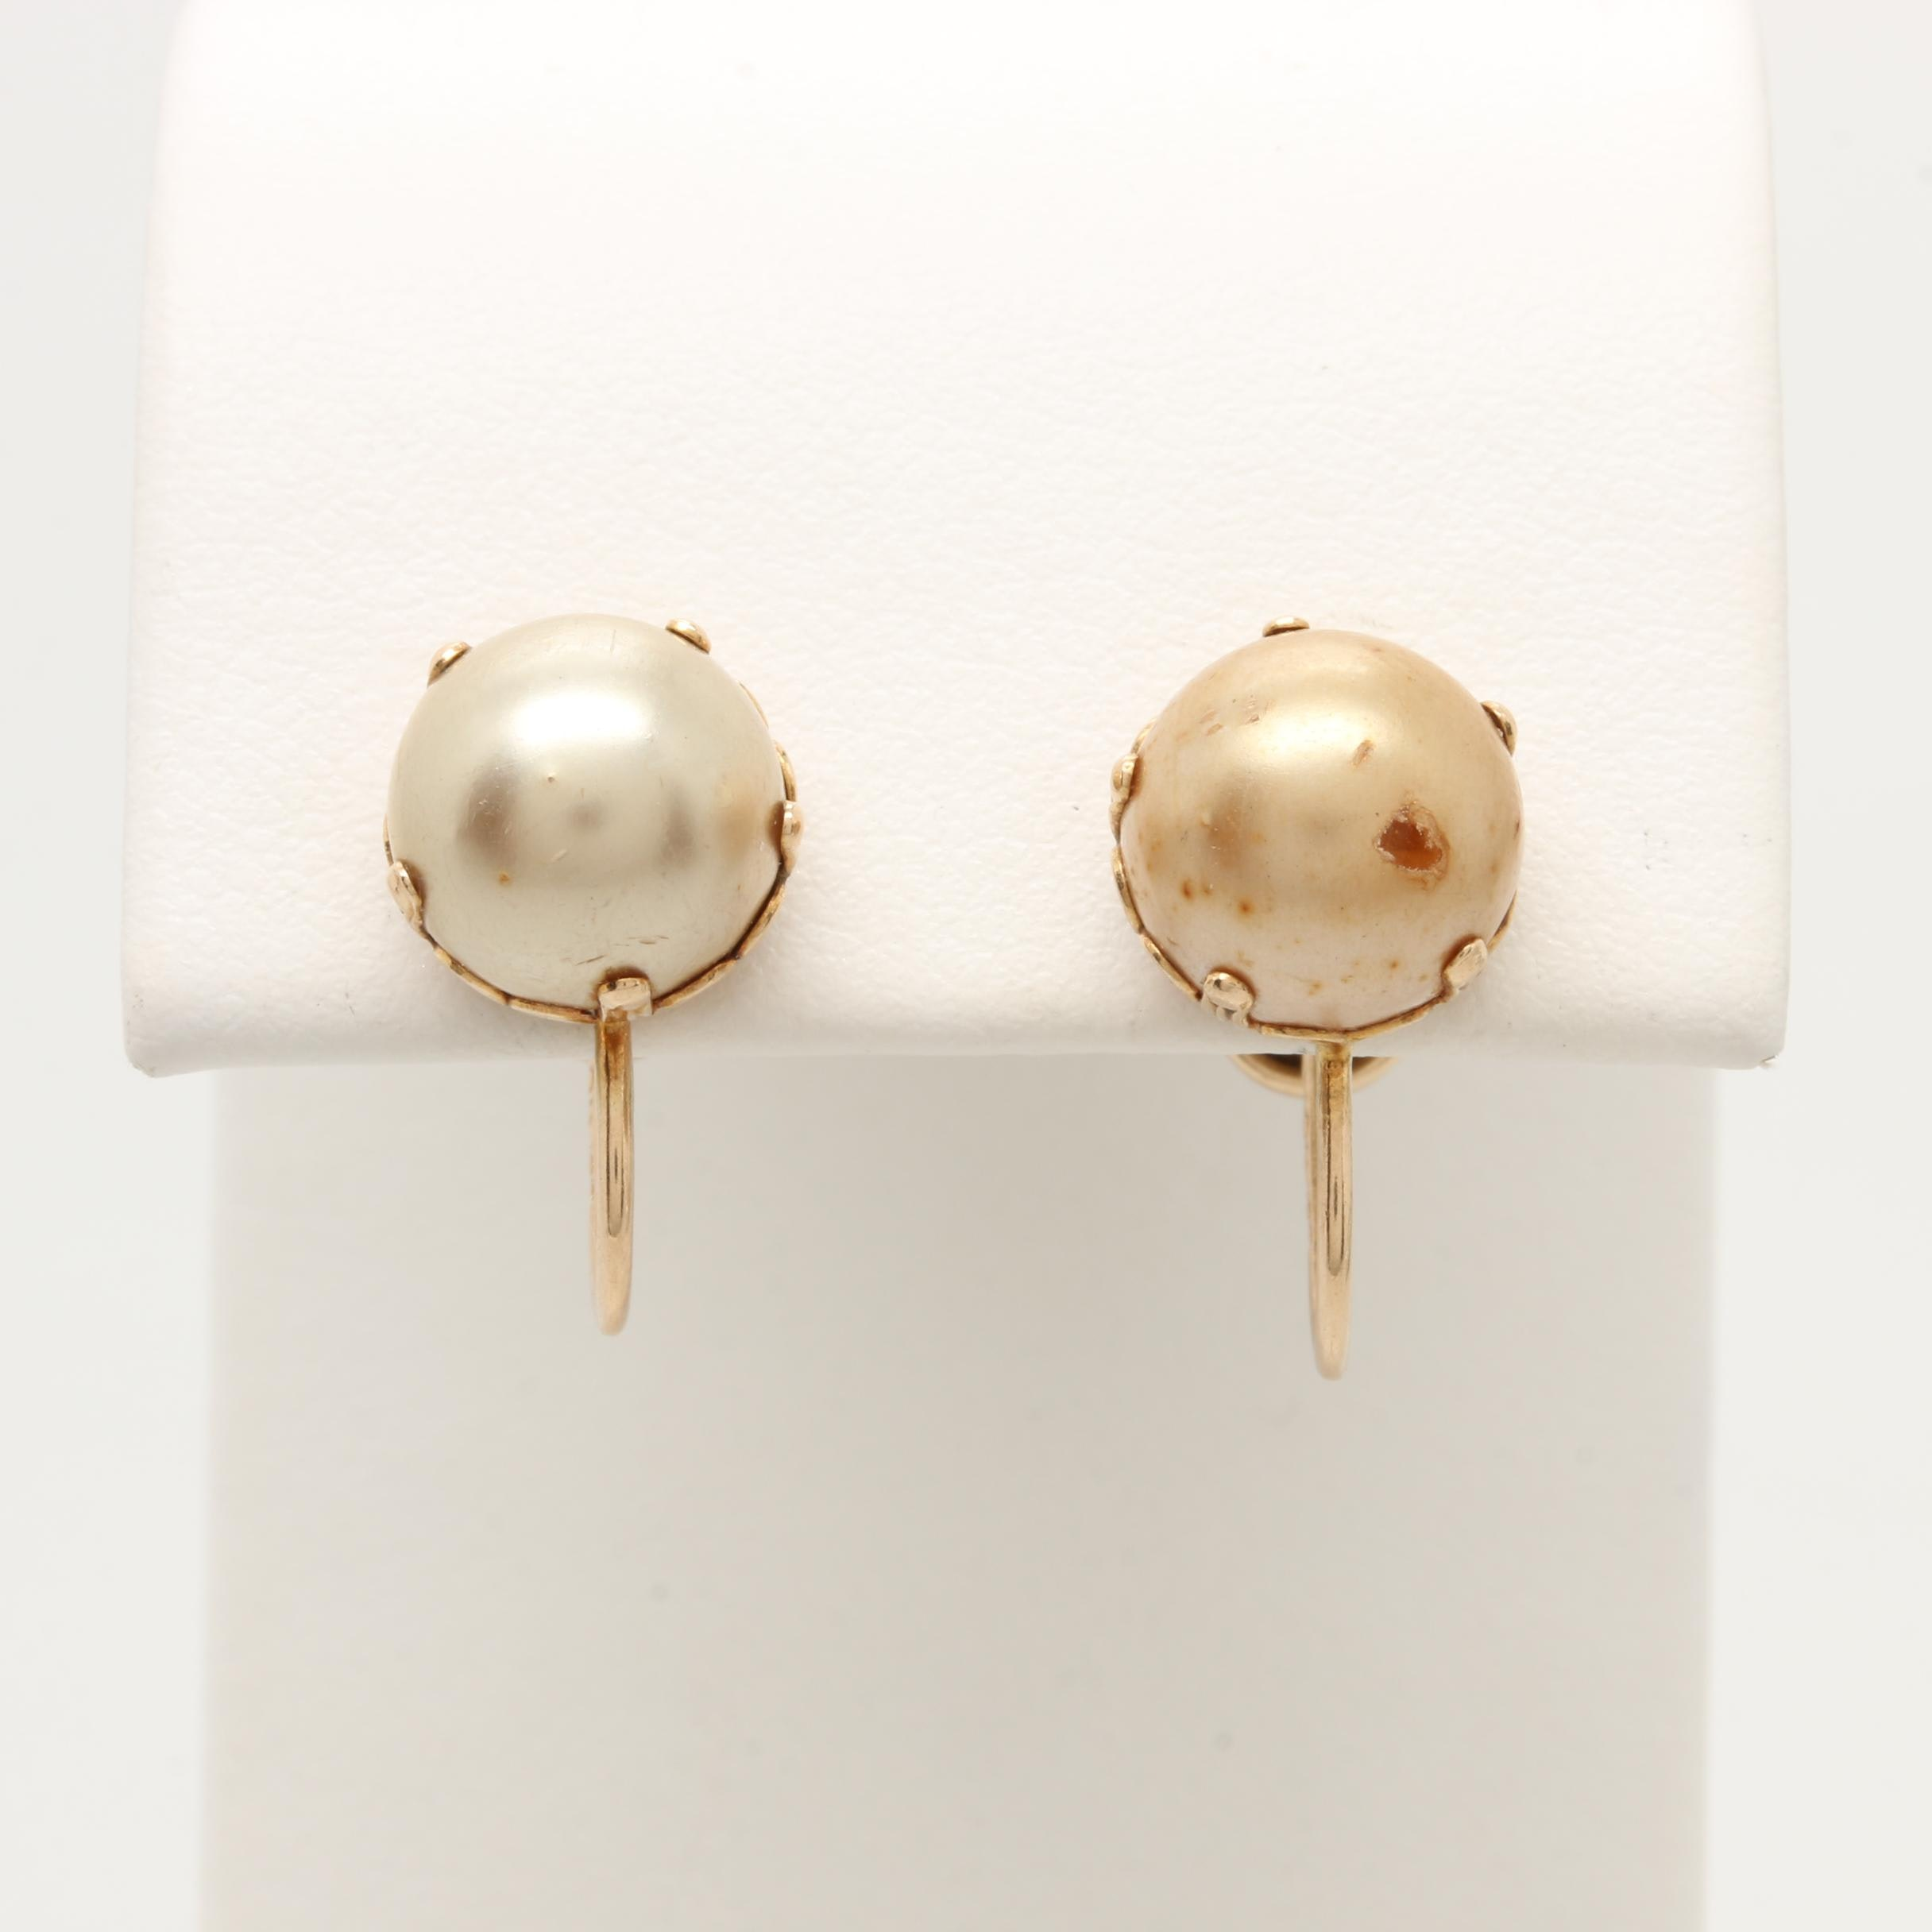 10K Yellow Gold Imitation Pearl Earrings